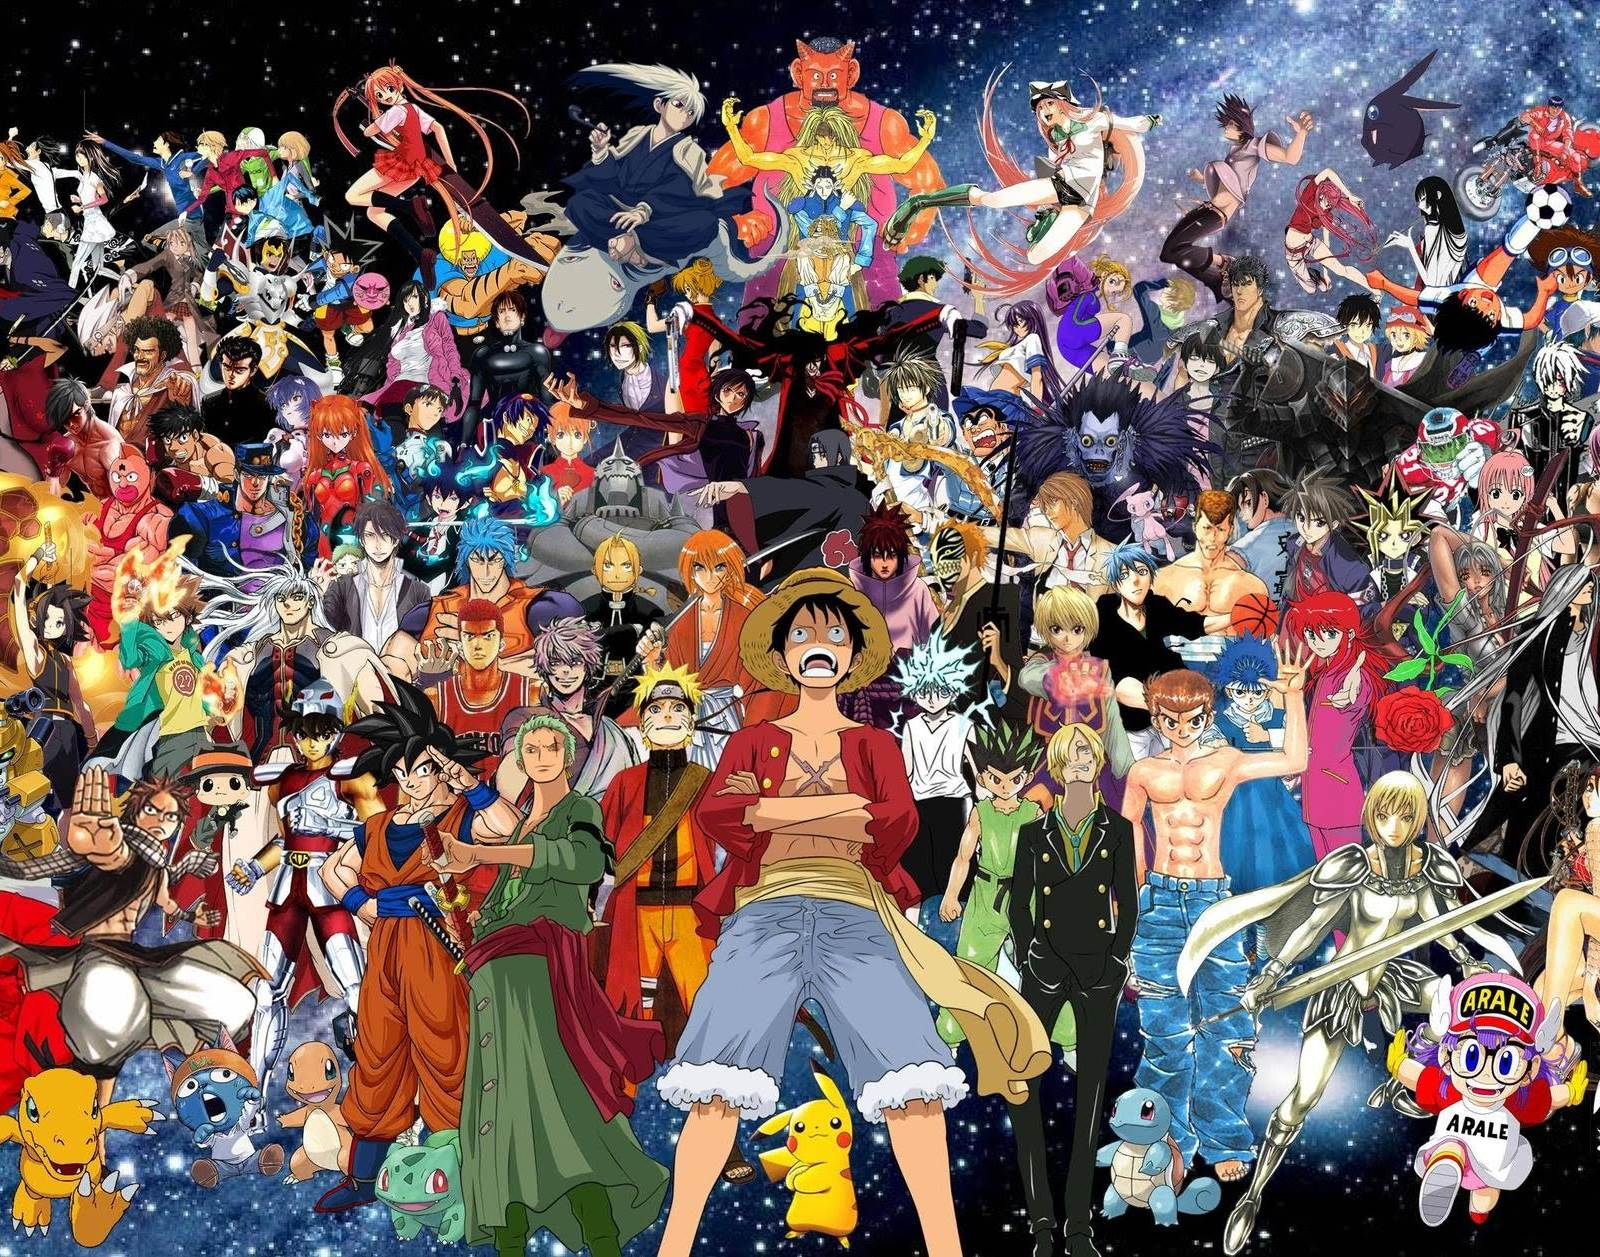 the official top 100 anime of all time according to the internet